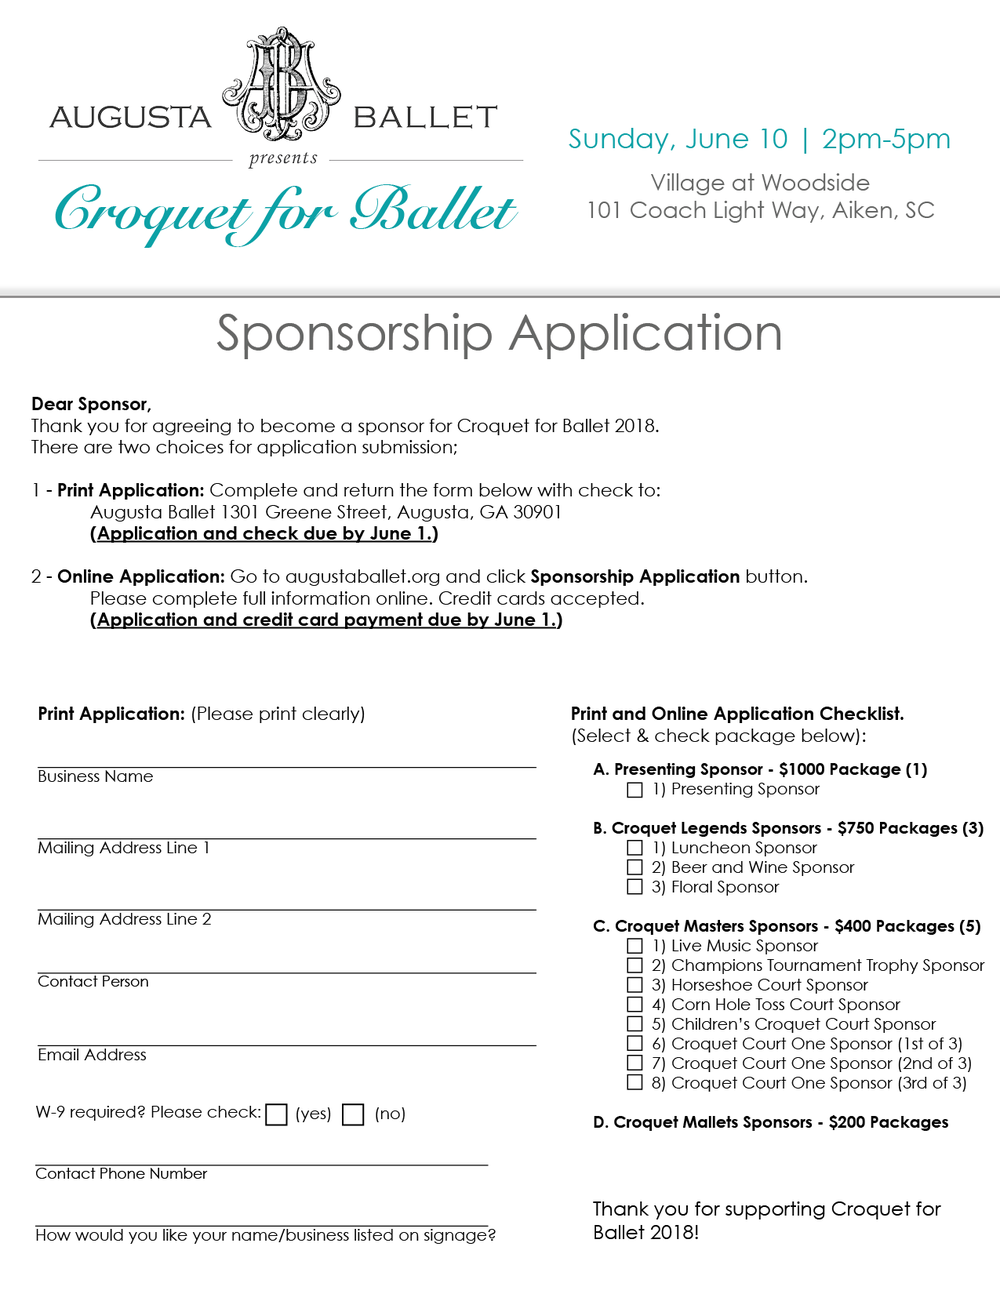 Sponsorship Opportunities2.png